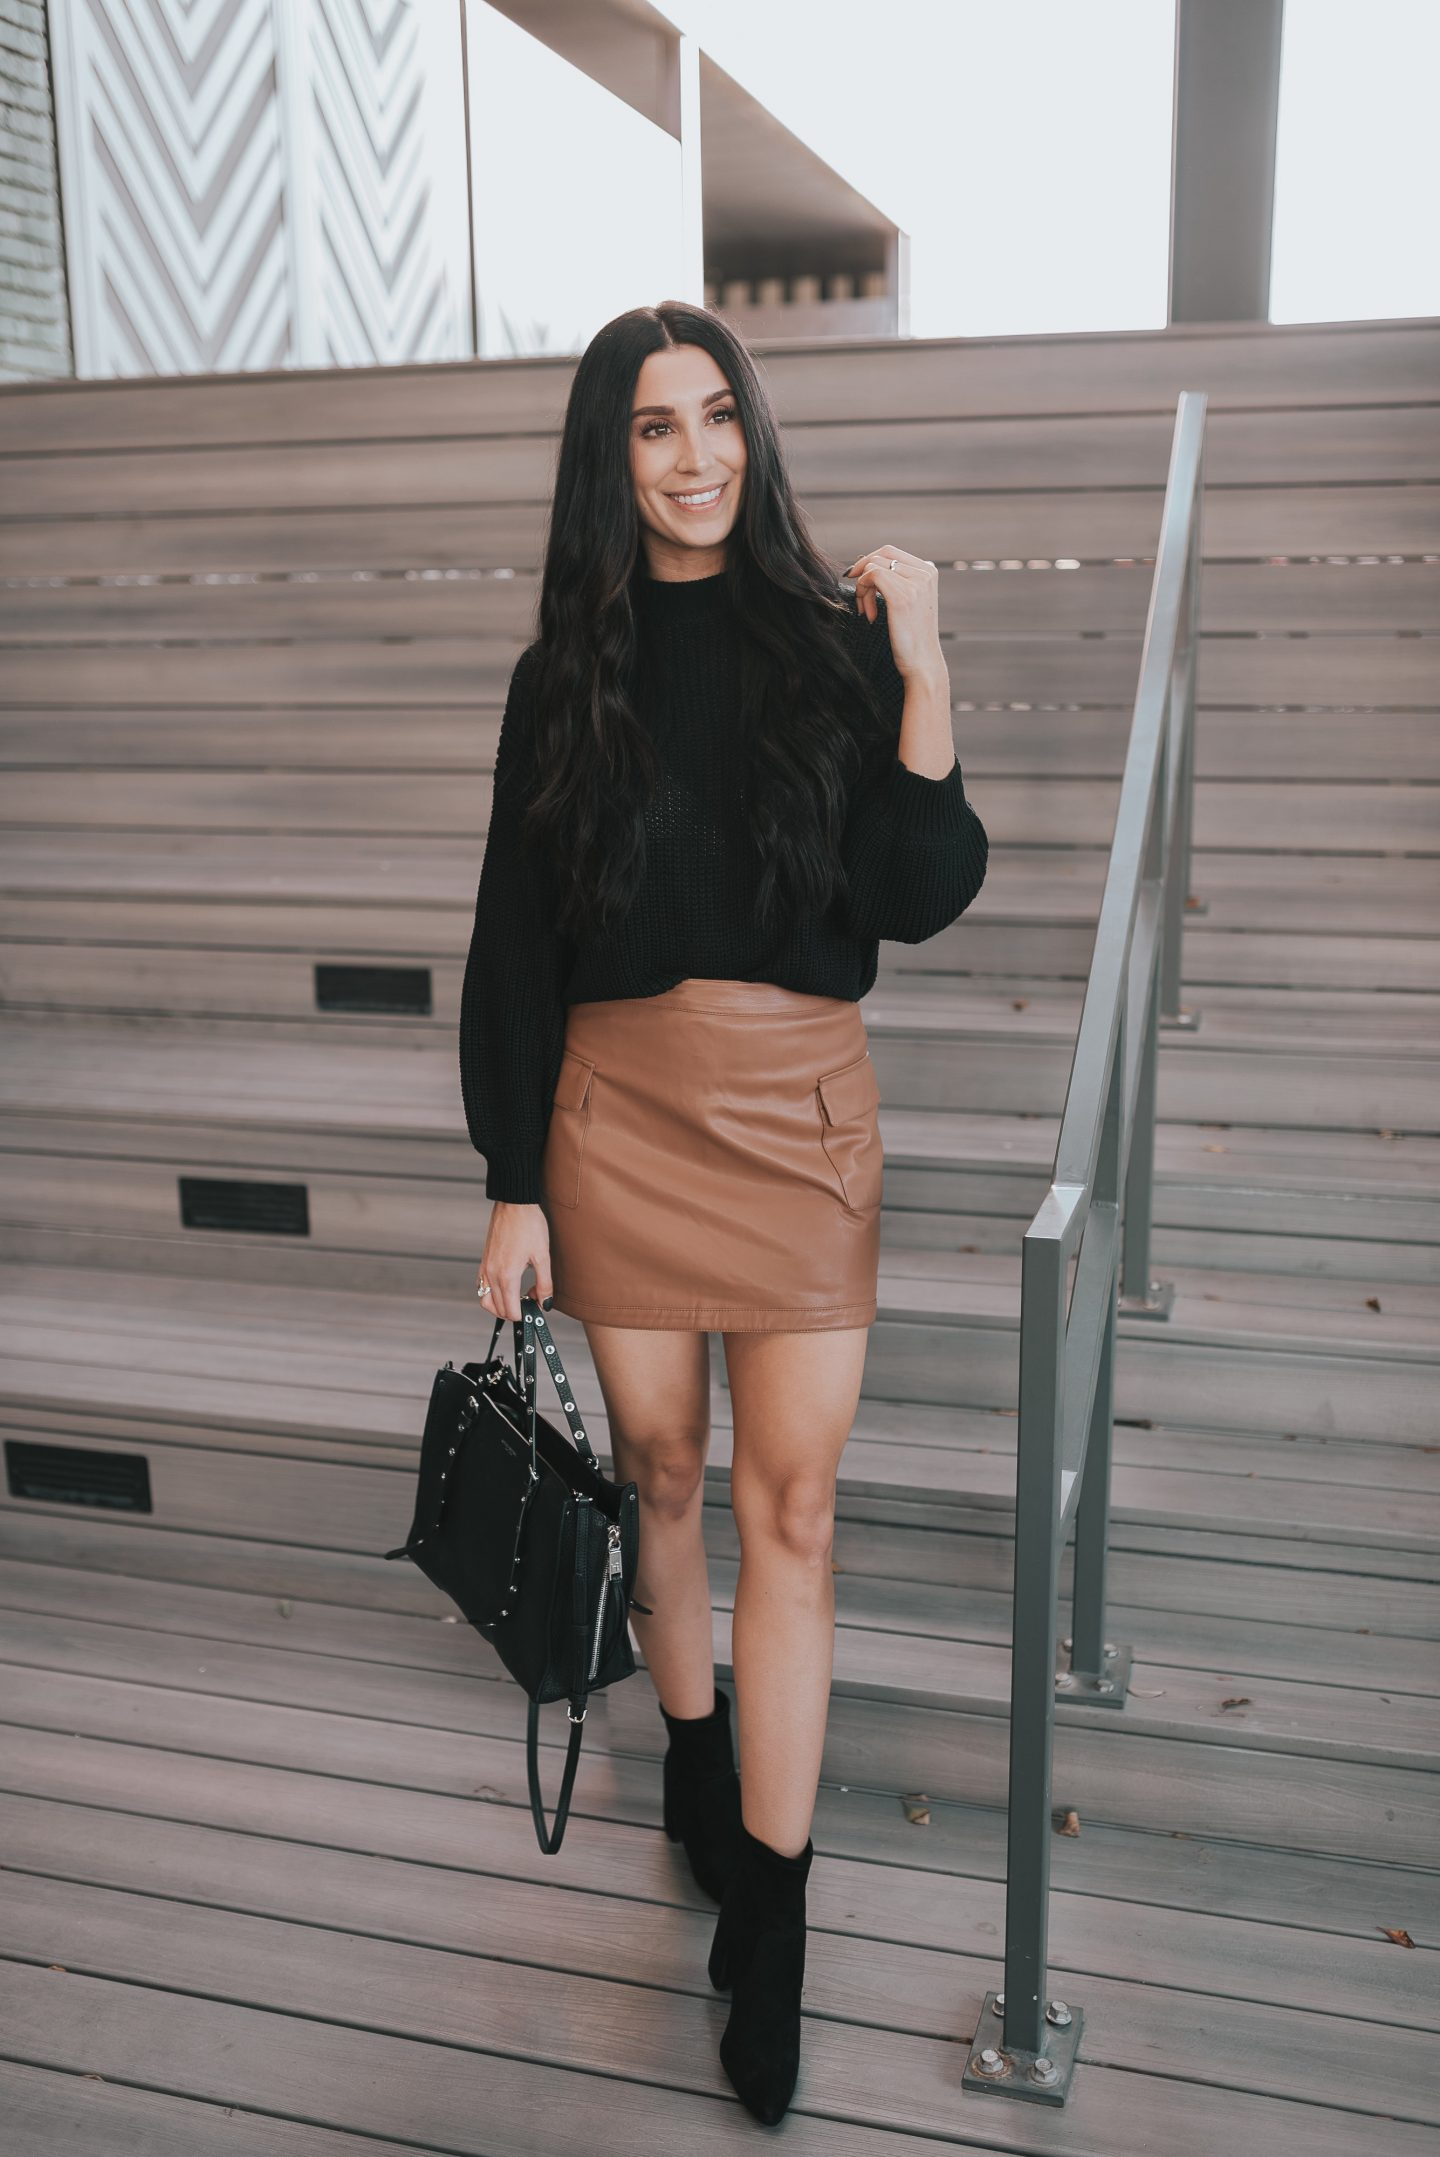 Dressing for Fall & Favorite Fall Things